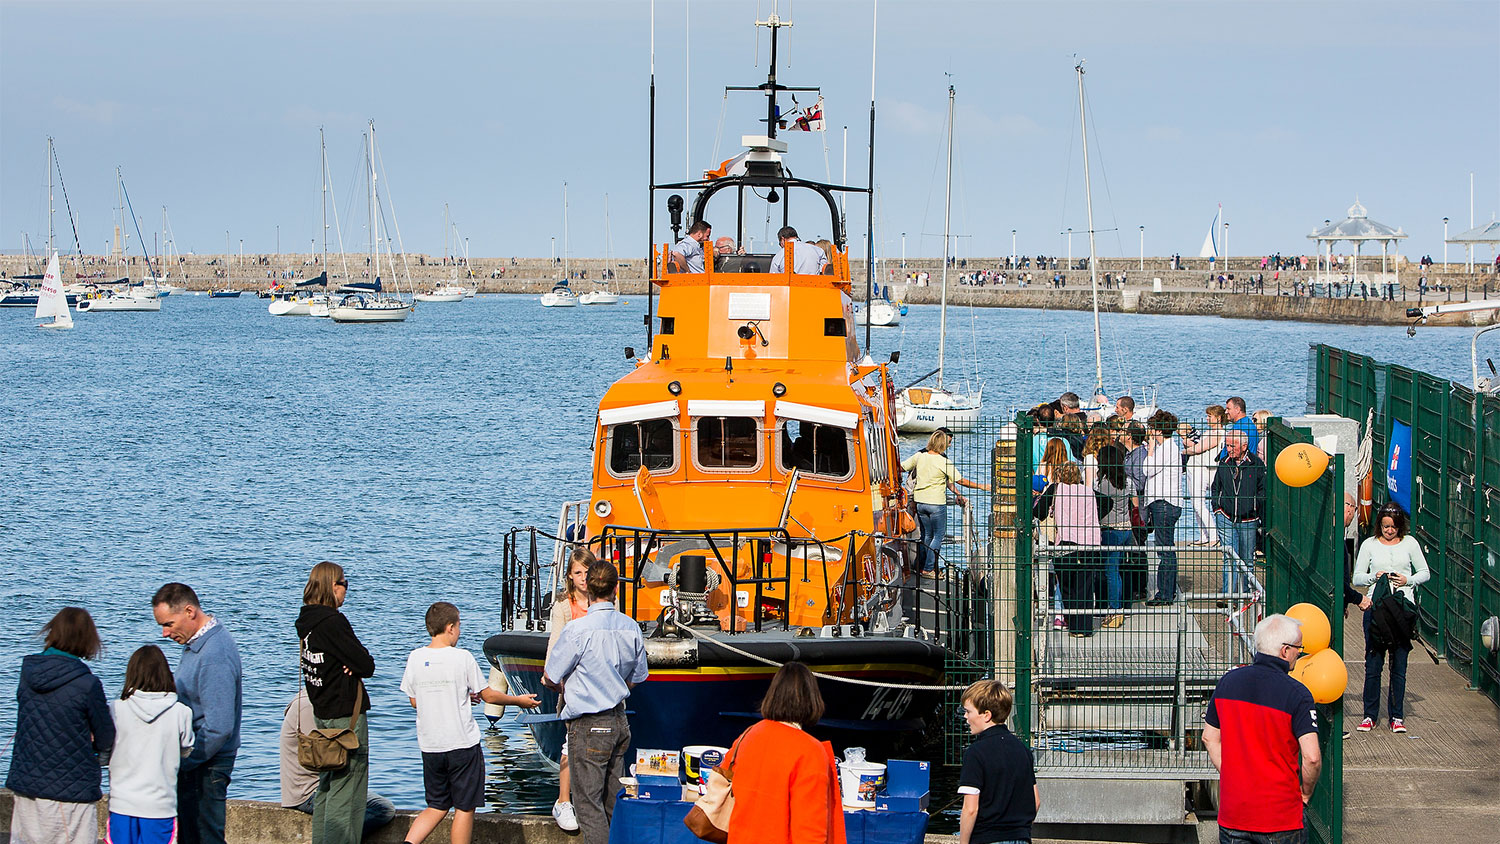 Dun Laoghaire Lifeboat station